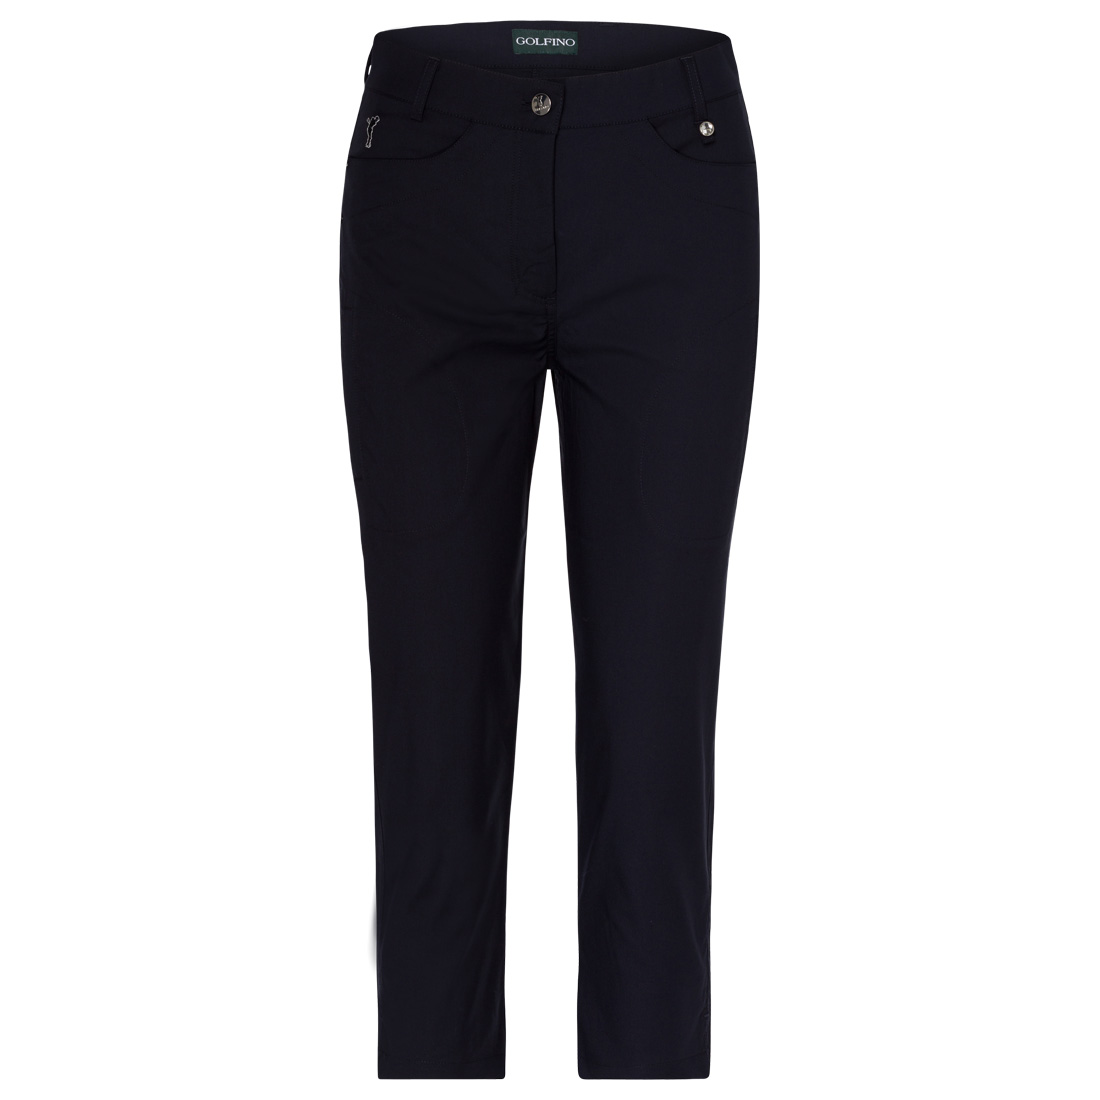 Tencel Twill Techno Stretch Capri